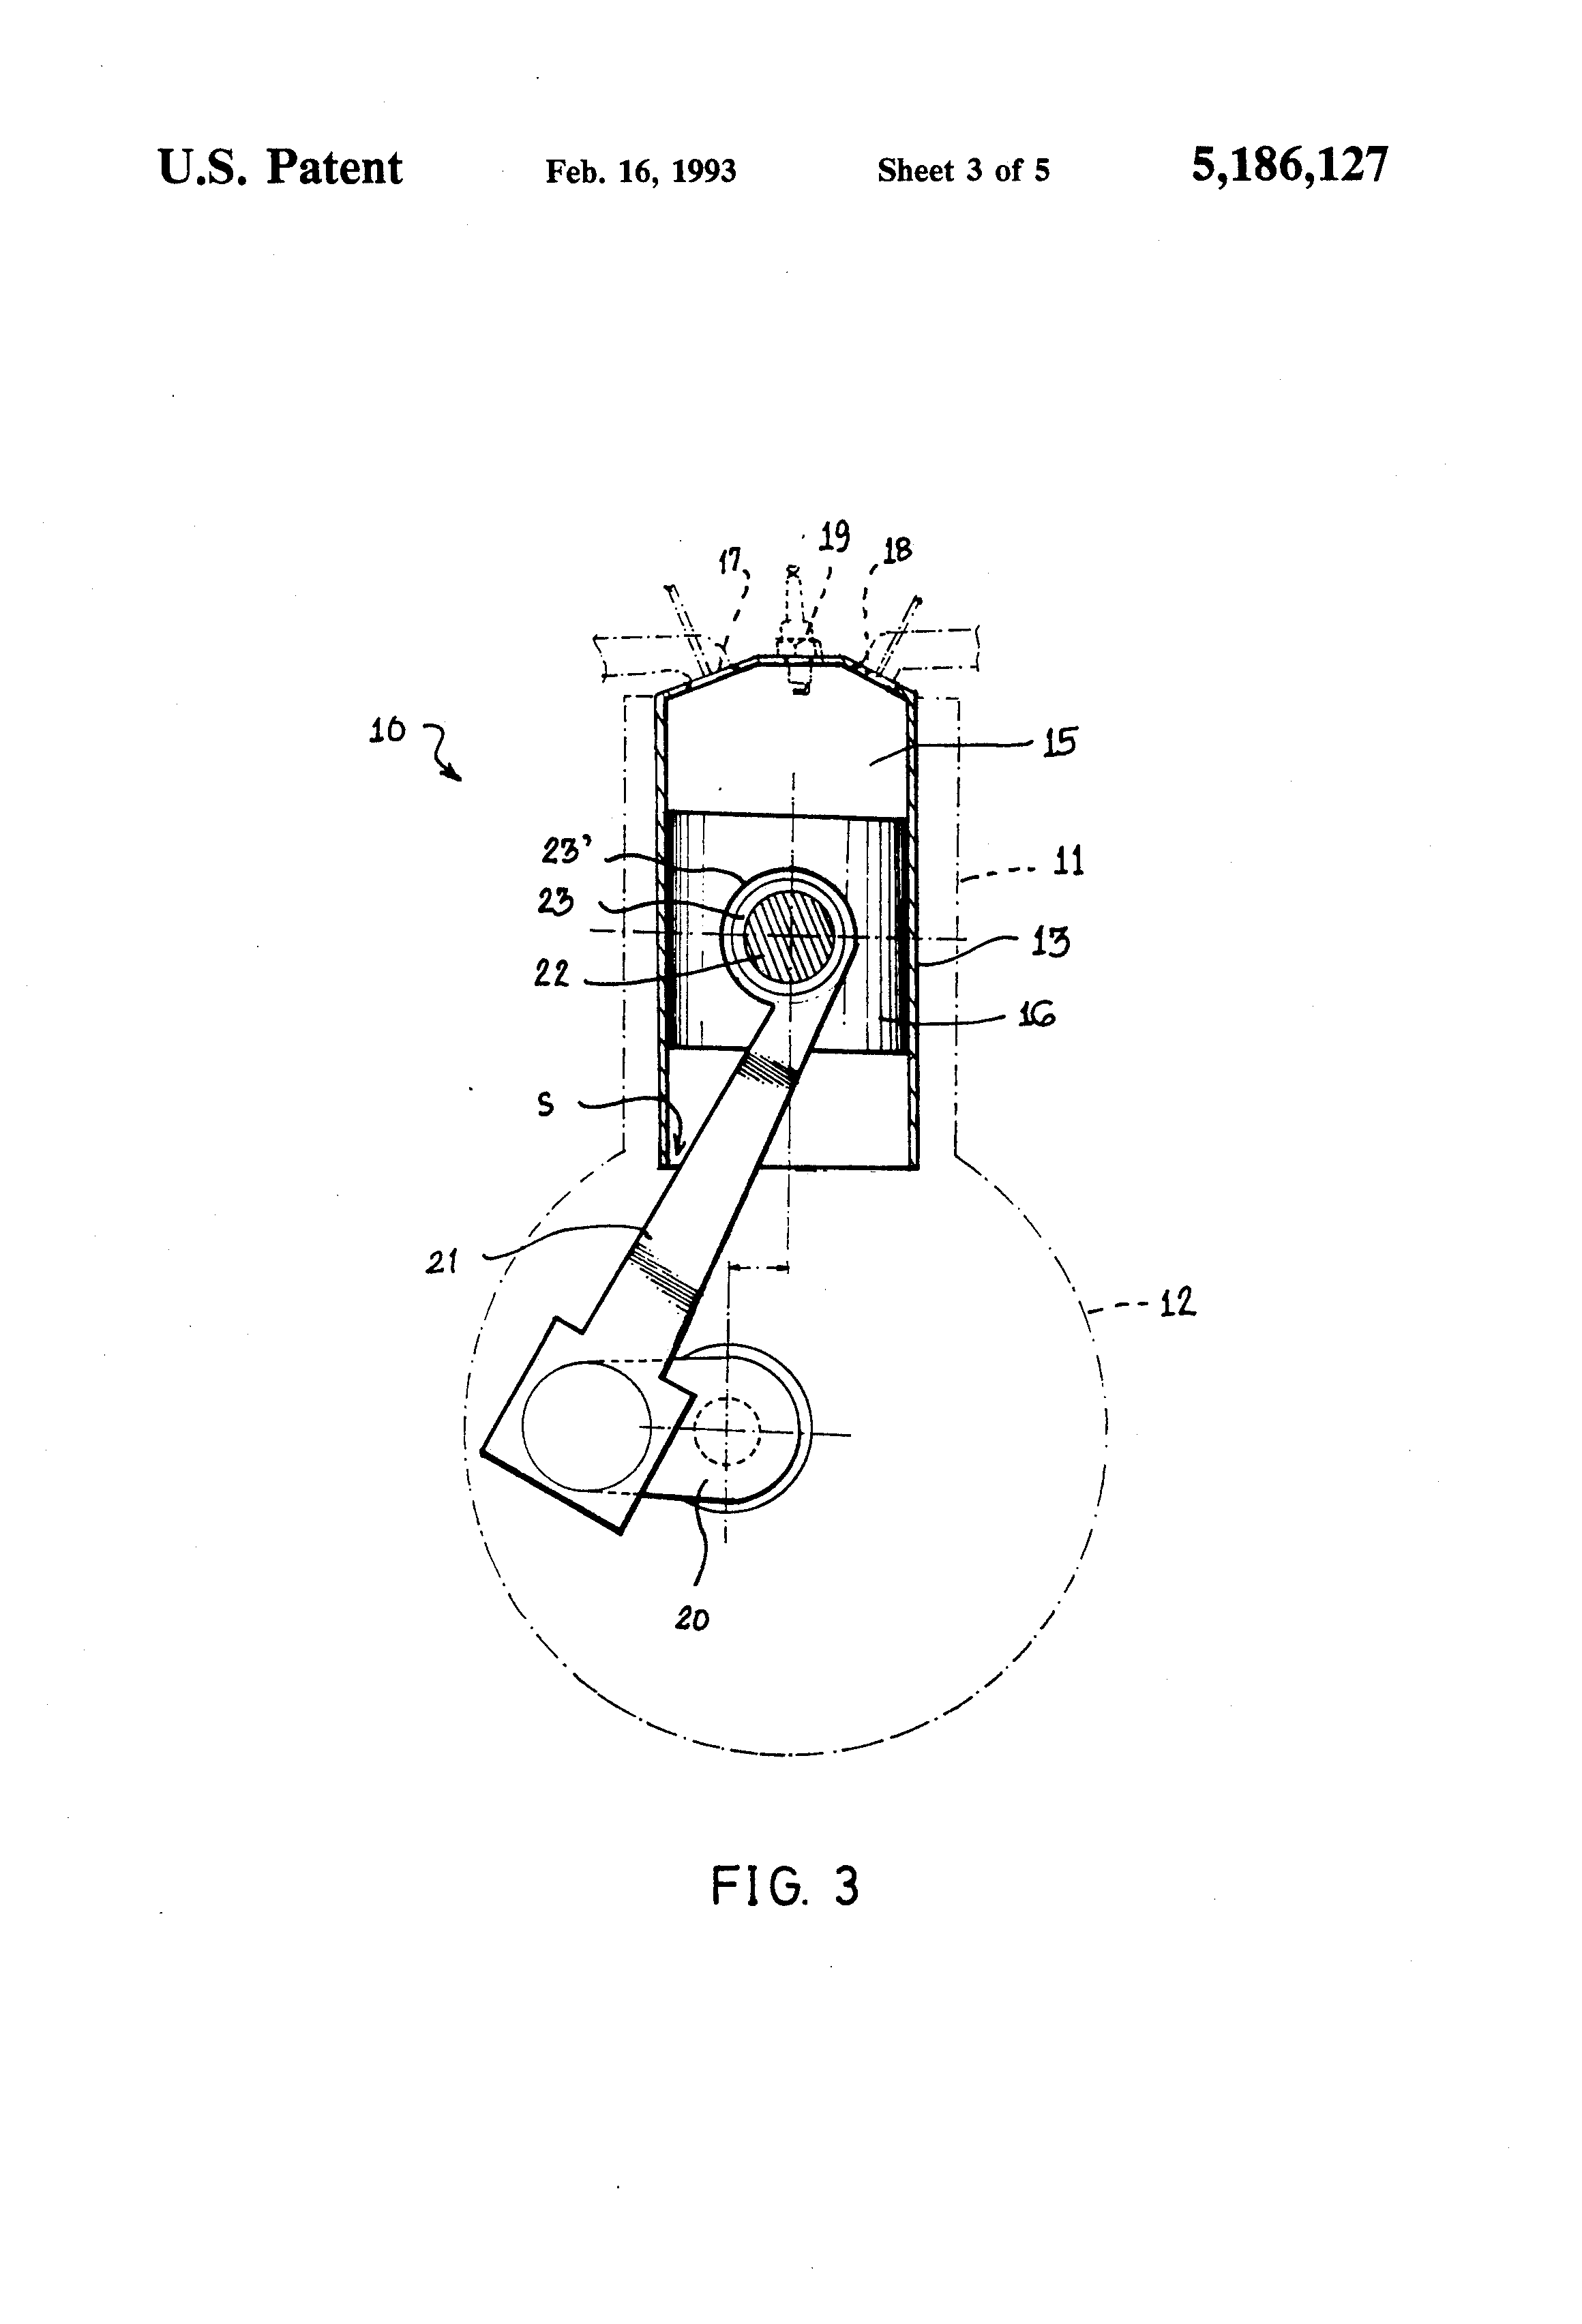 Internal Combustion Engine Diagram Of The Ott Wiring Library Combustible Patent Us5186127 With Offset Connecting Drawing